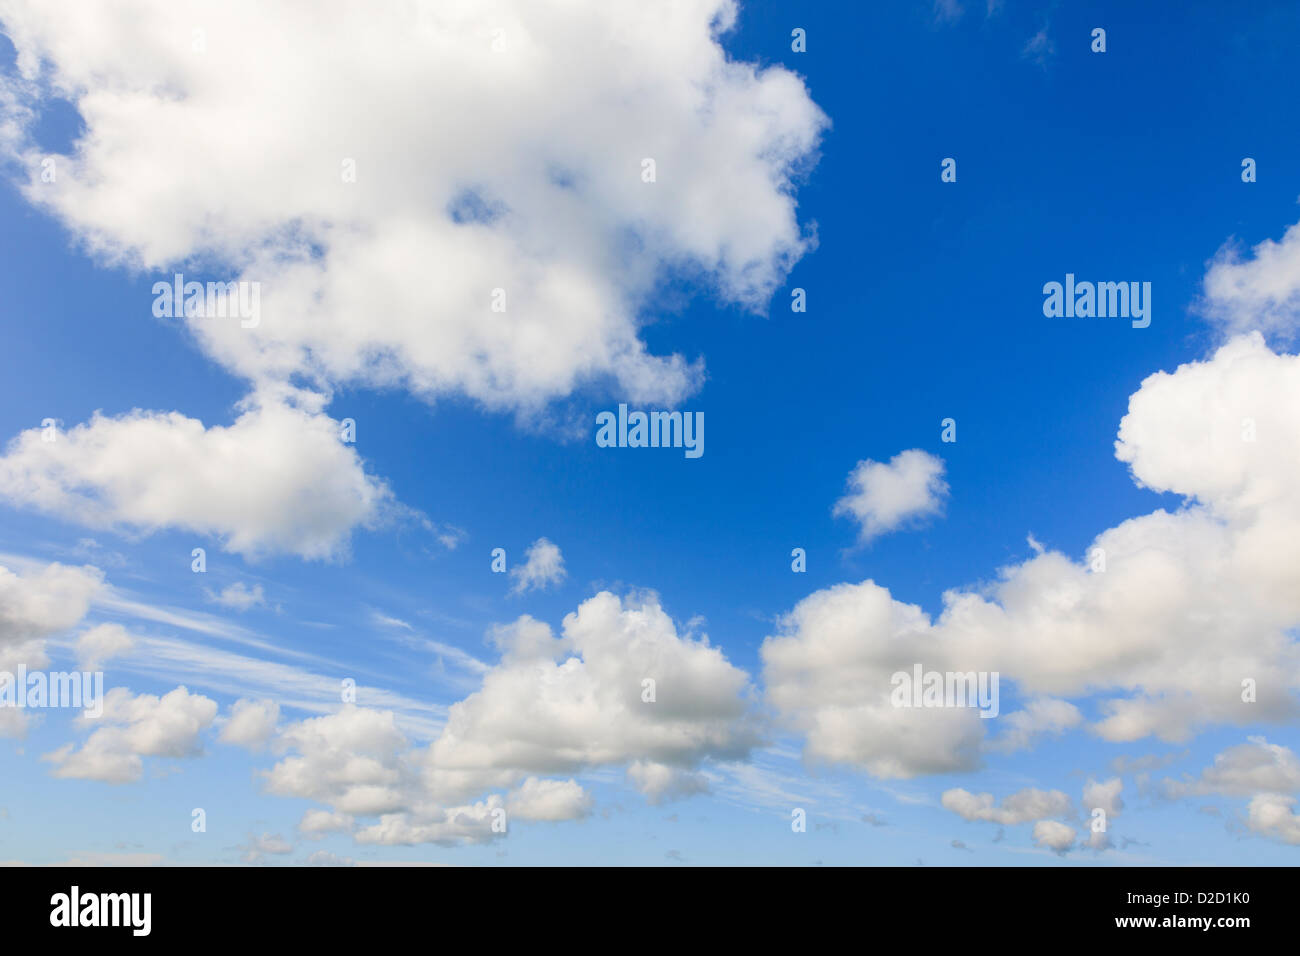 Blue sky with fluffy white cumulus clouds indicating clement summer weather in England UK Britain. Stock Photo